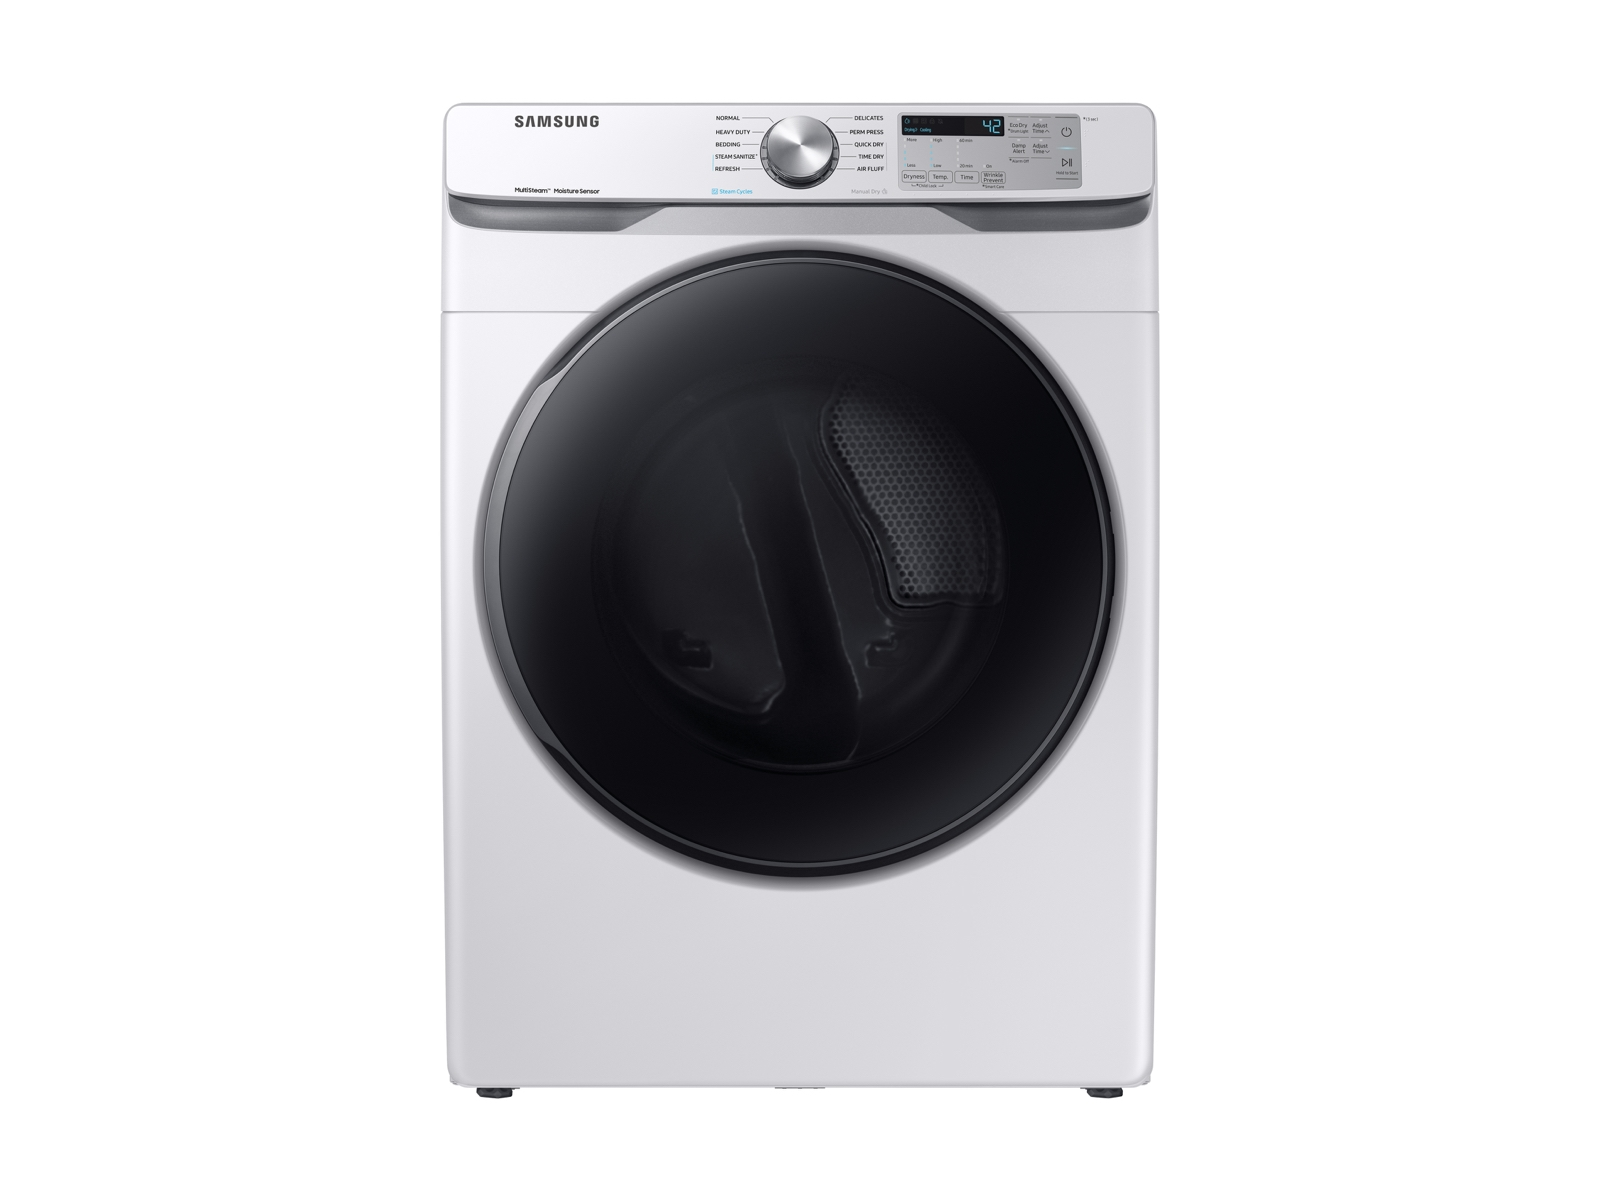 Samsung 7.5 cu. ft. Electric Dryer with Steam Sanitize+ in White